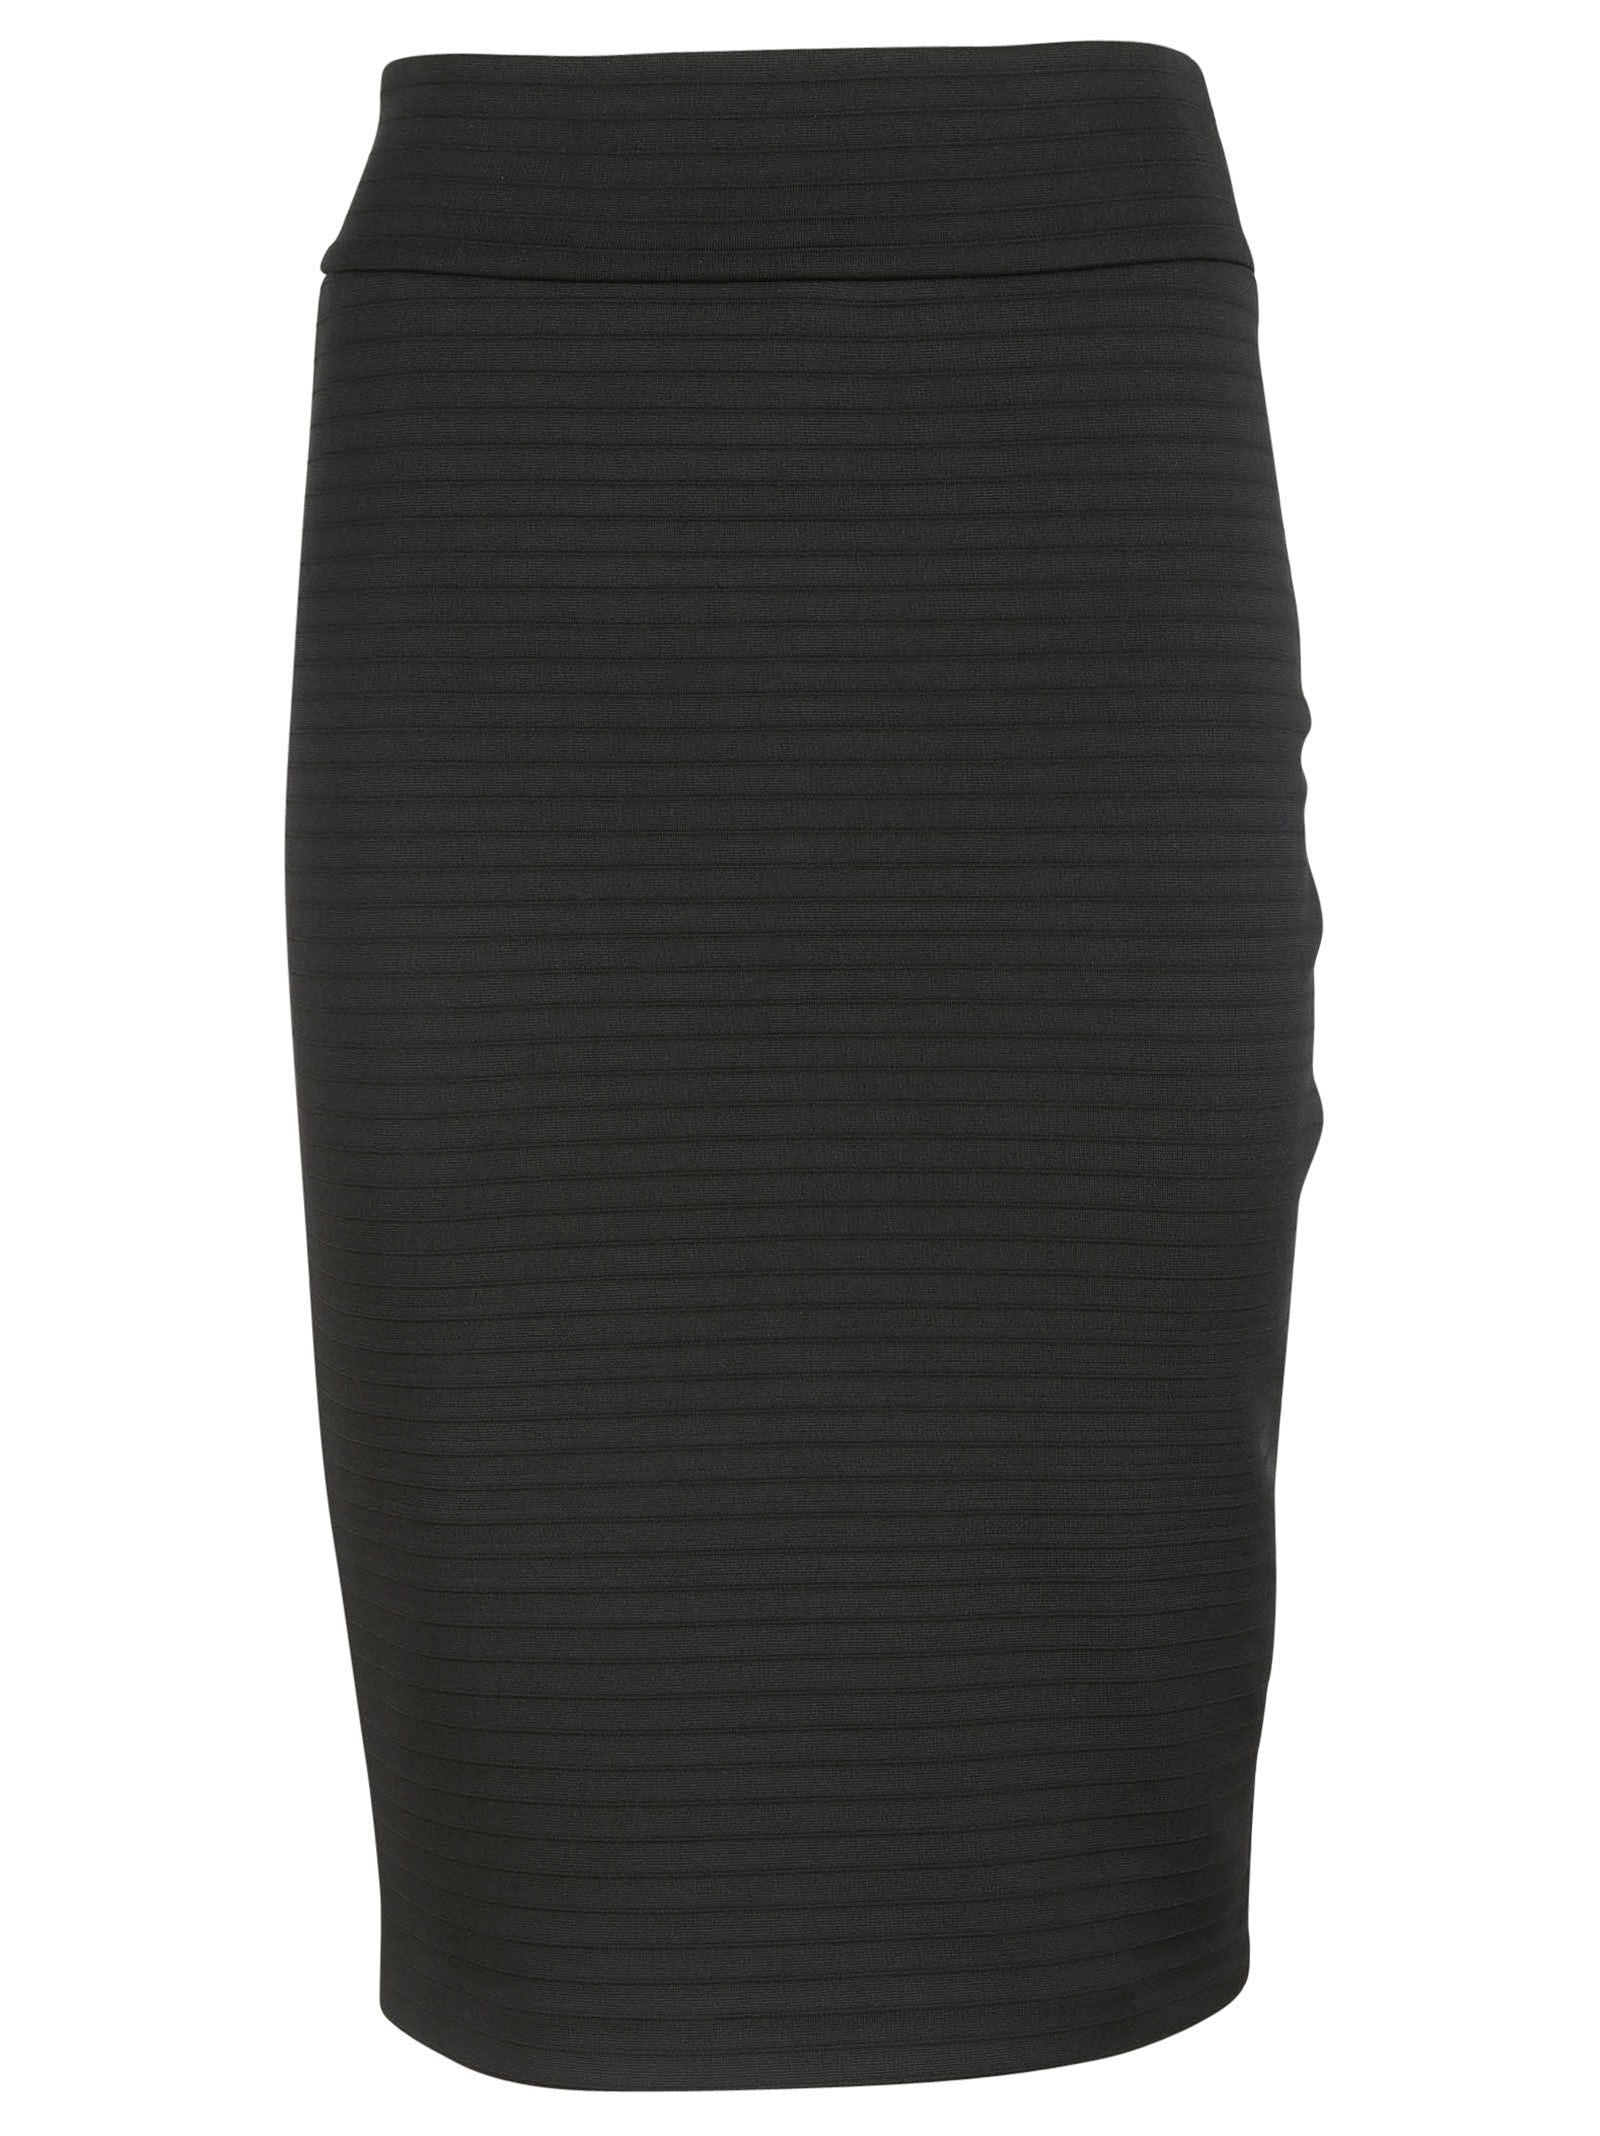 michael kors female 188971 black knit pencil skirt